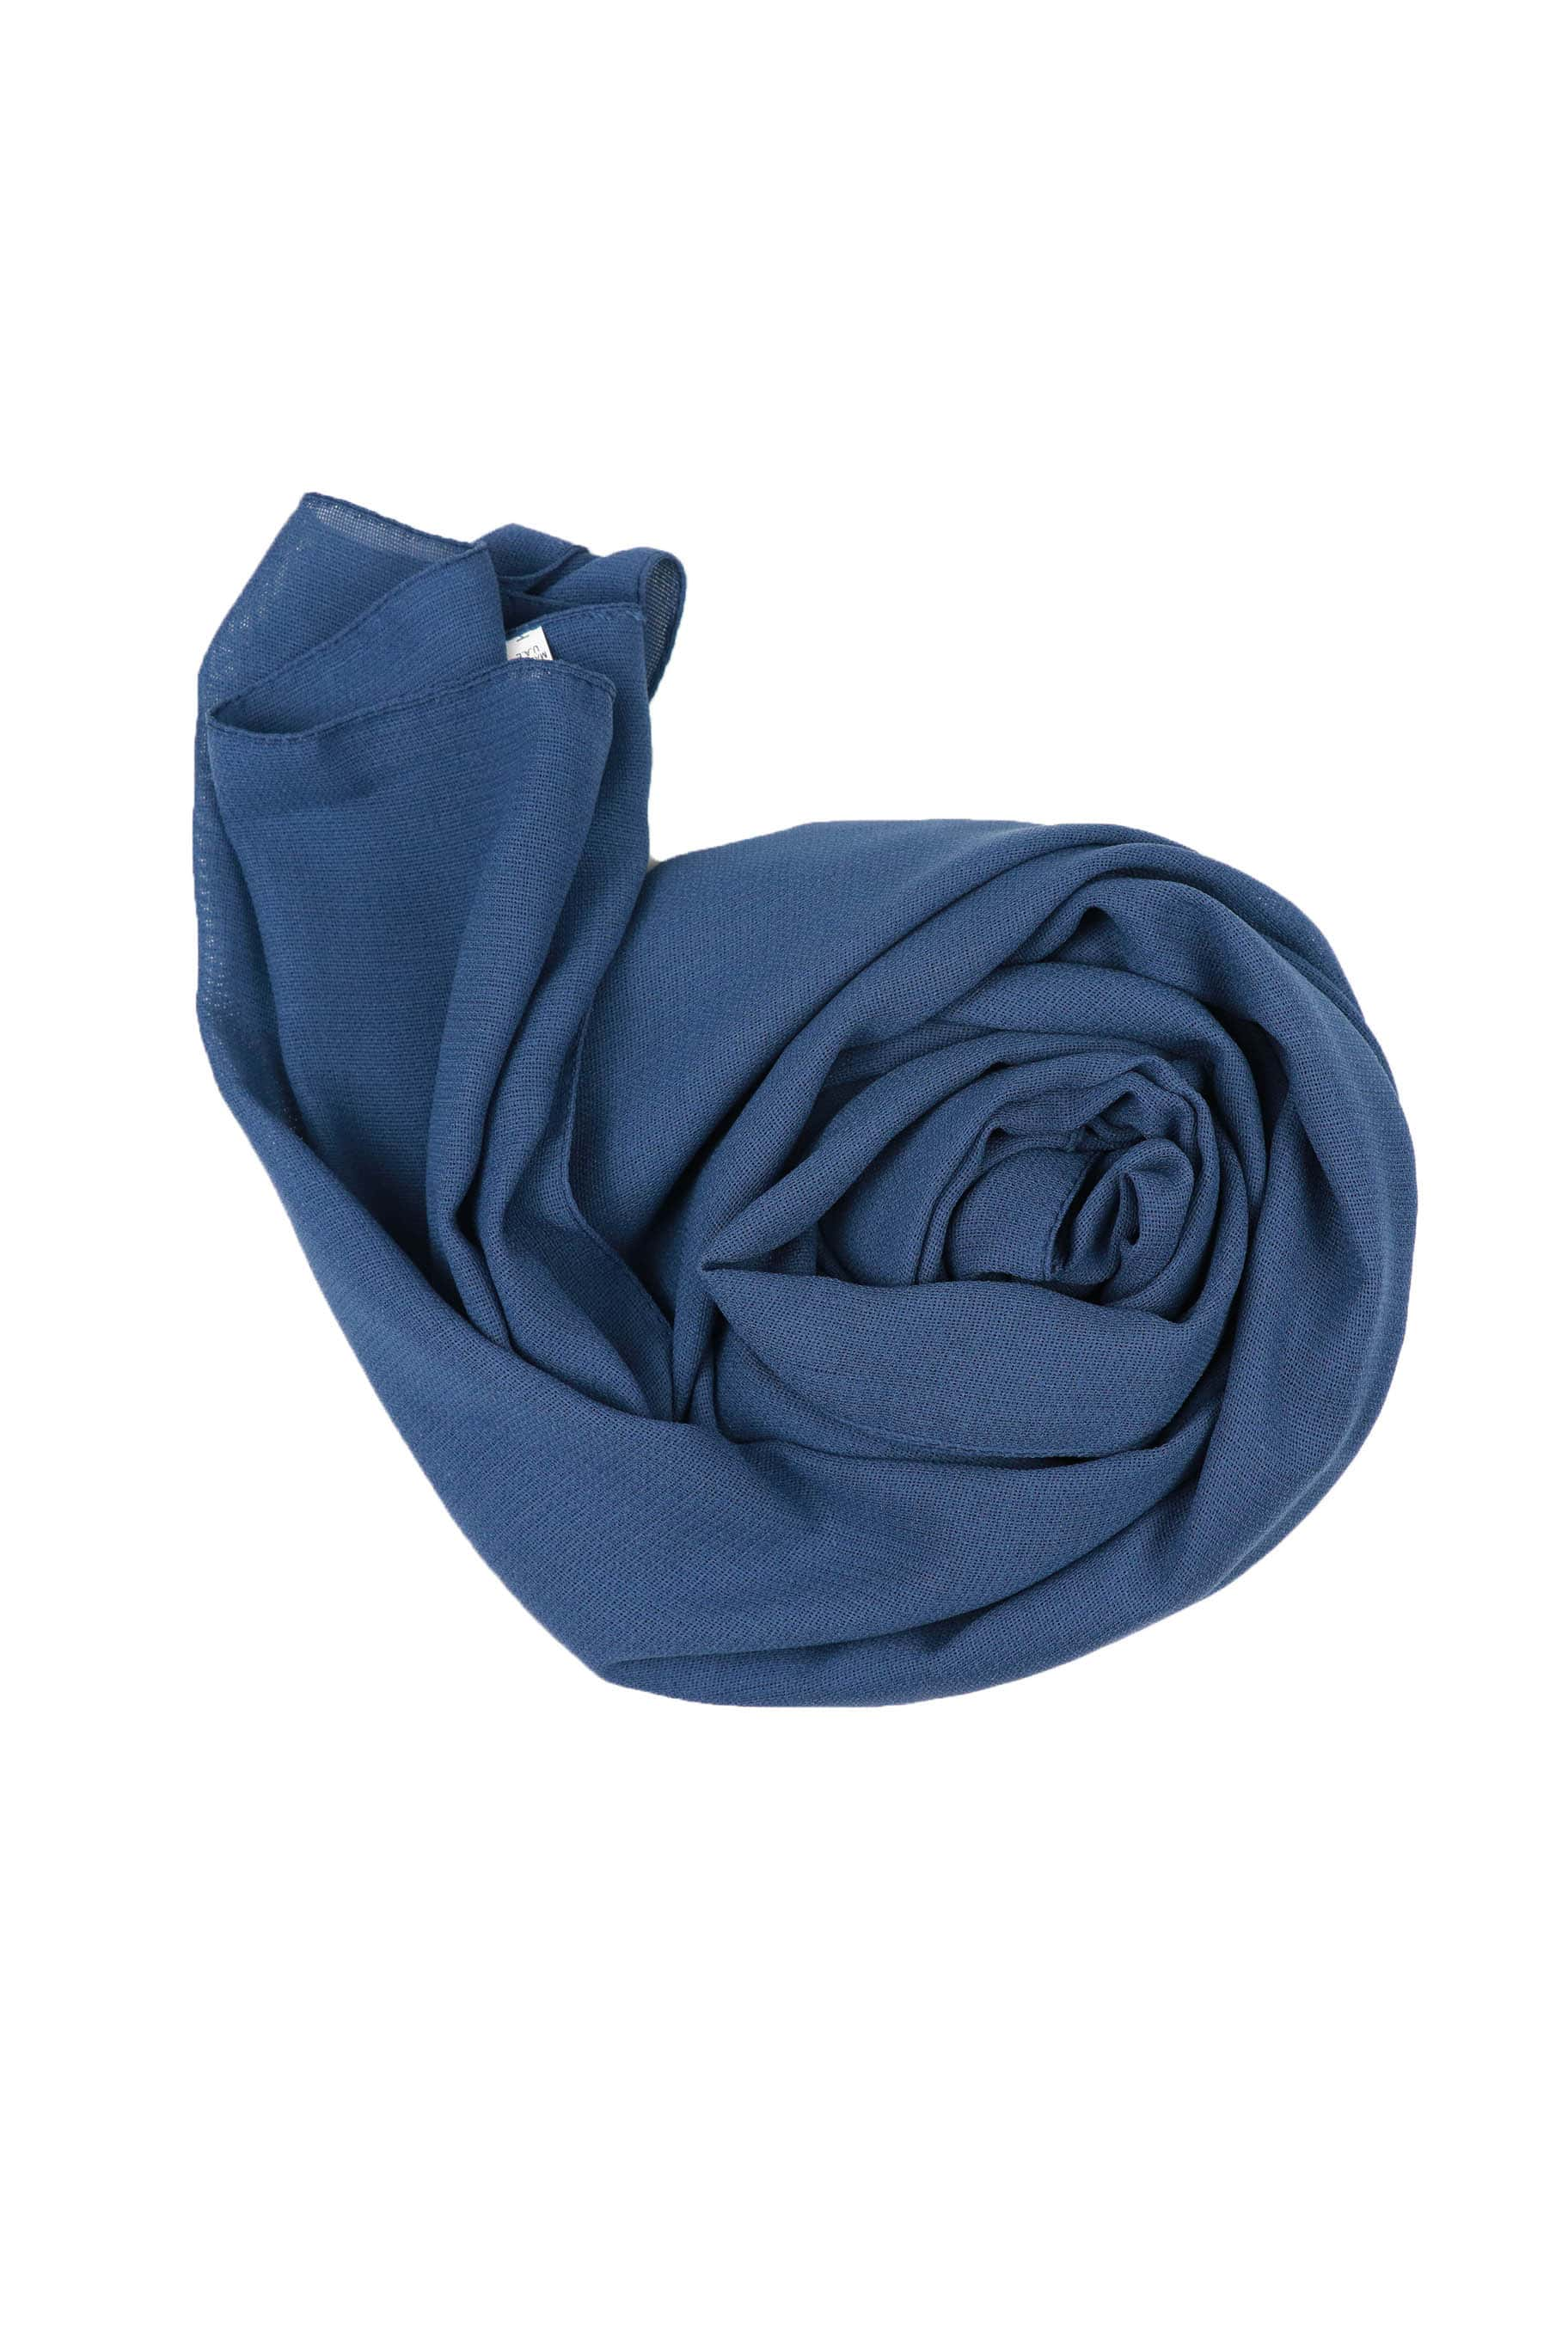 Slate Blue Jute Cotton - Jute-Cotton Hijab - The Modest Look